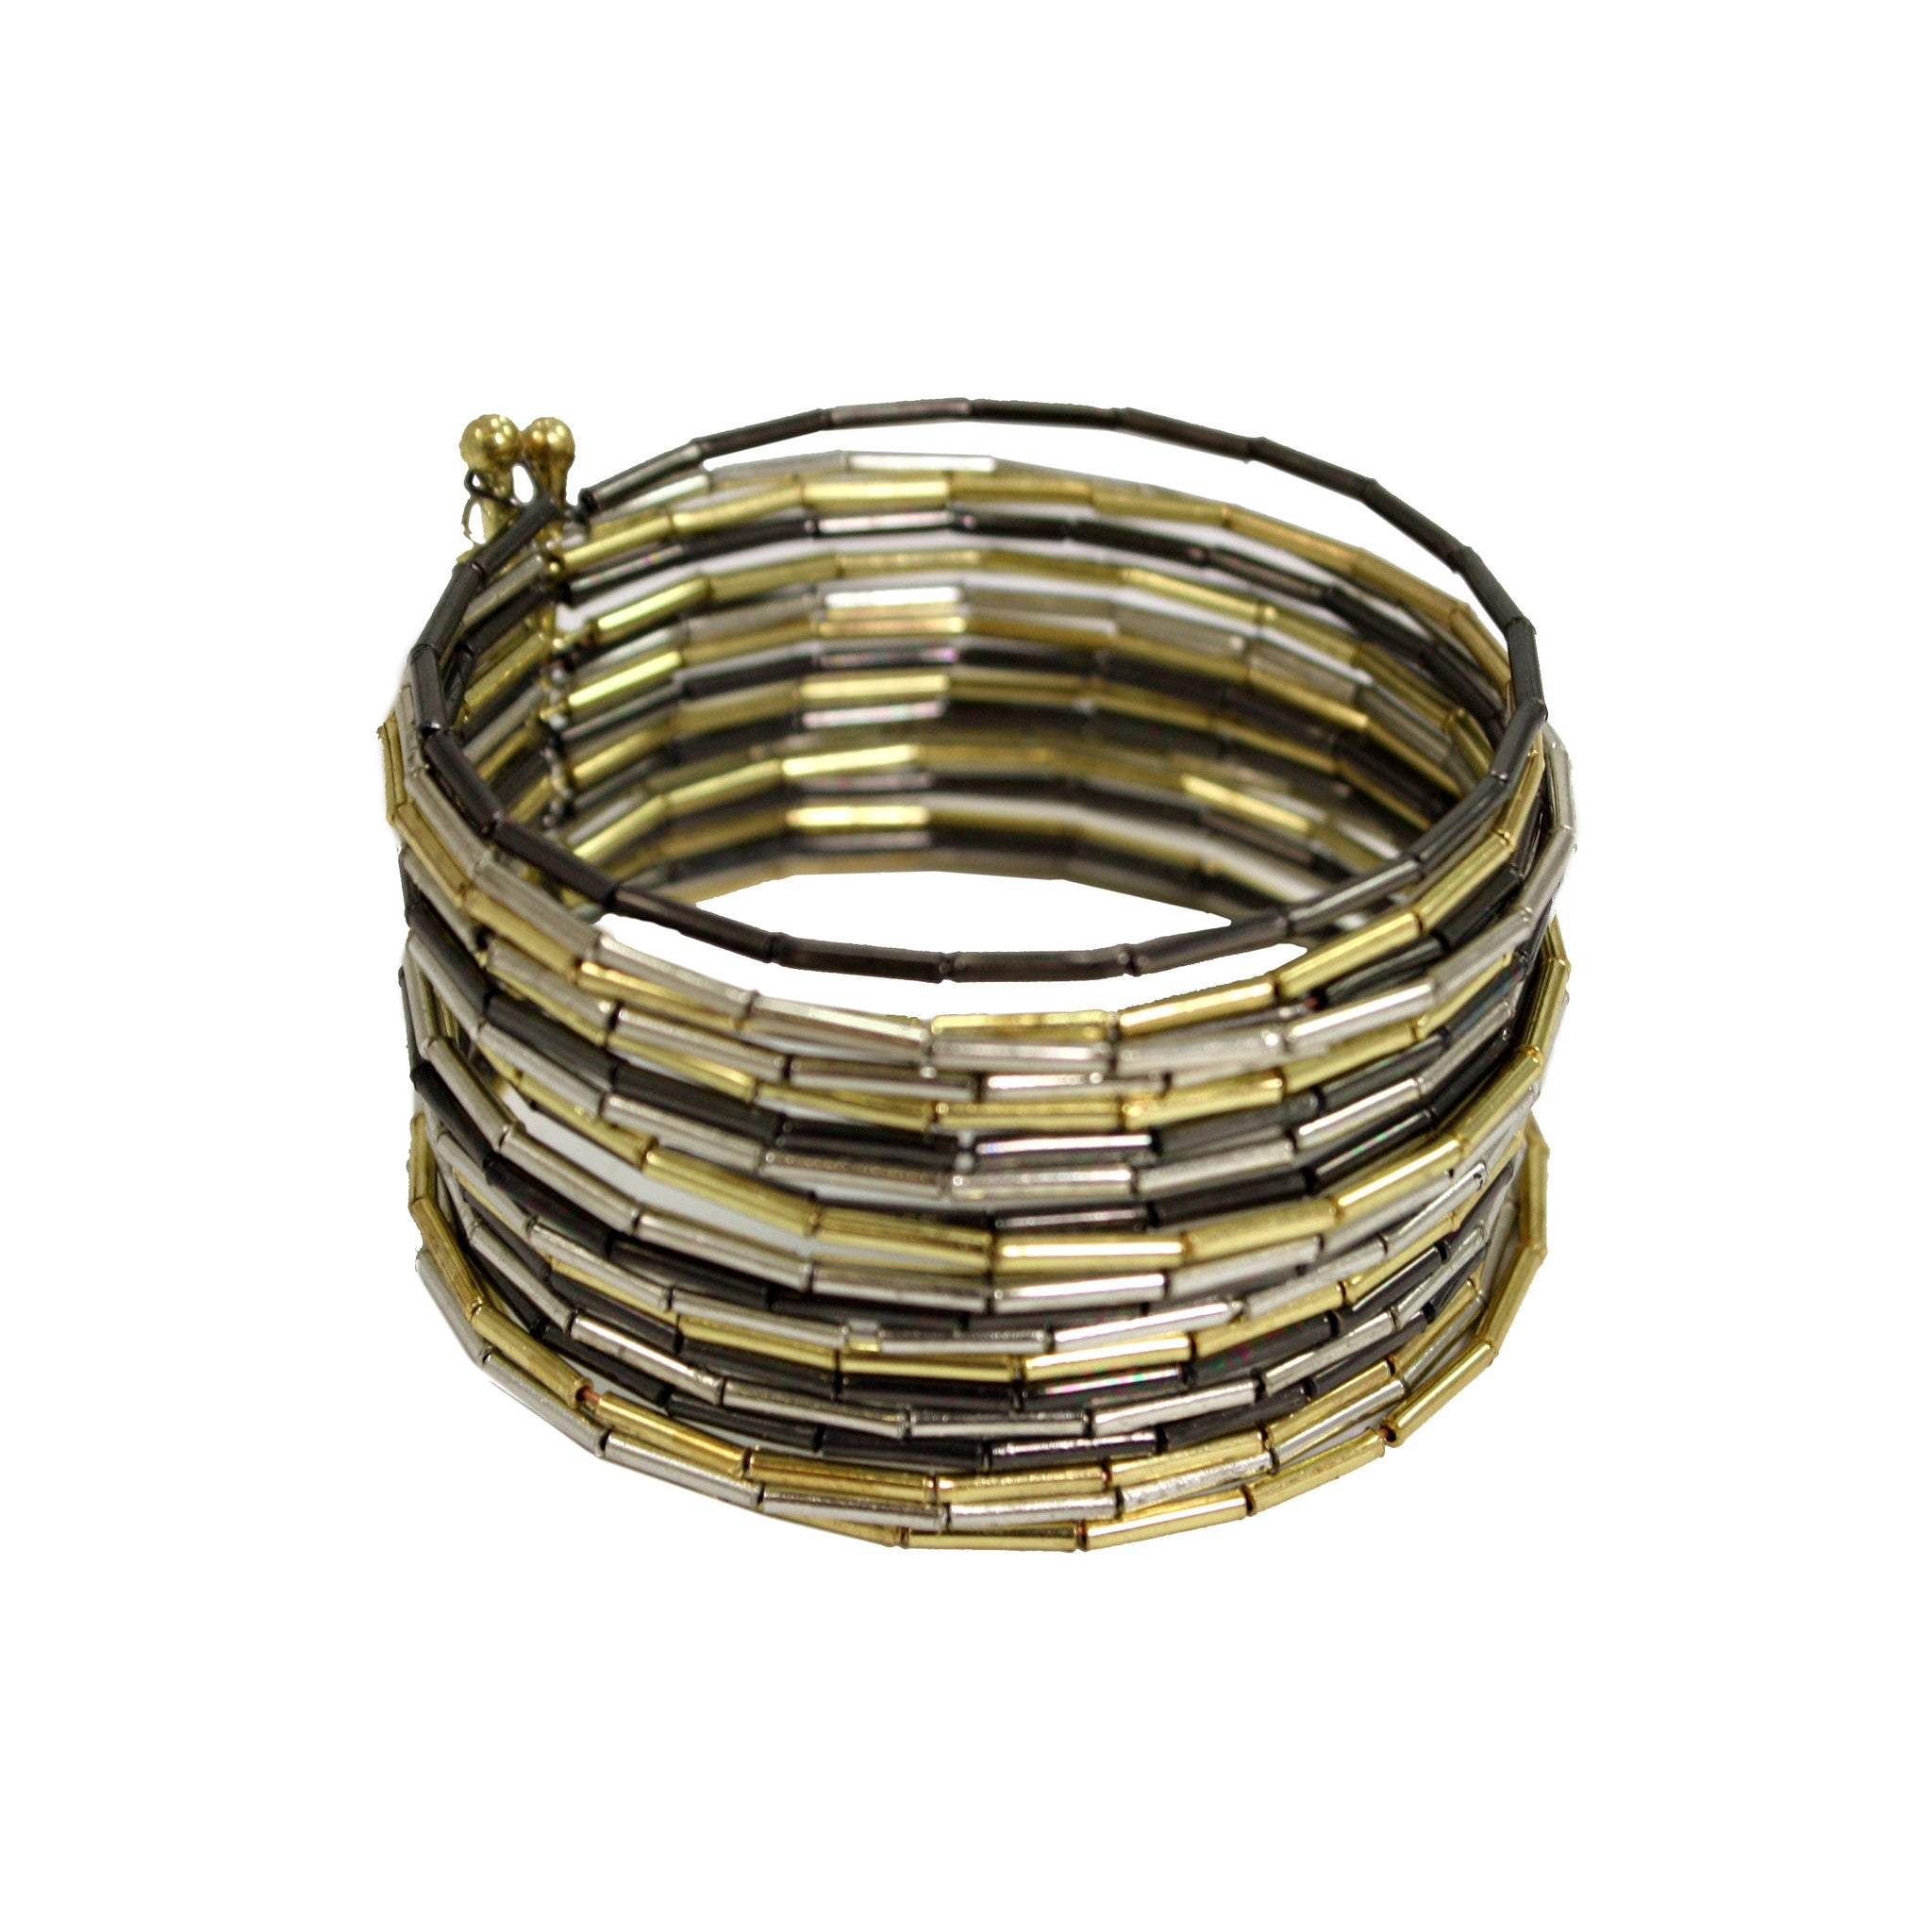 g diameter bracelet component charm products stainless bangle gold lot bangles finding heart size steel